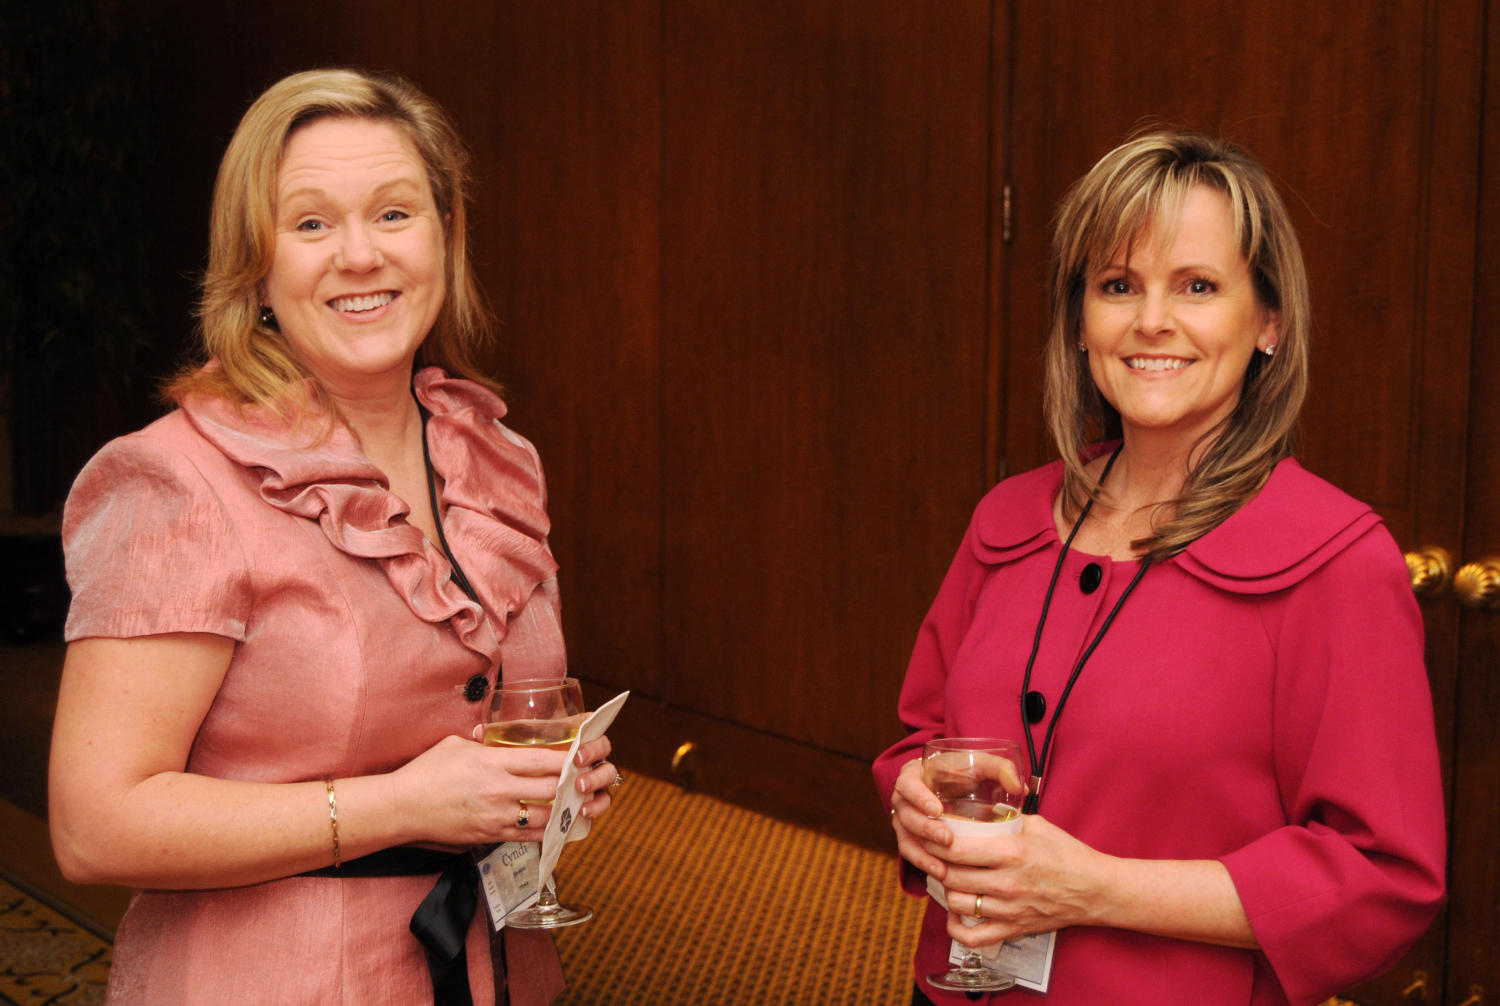 [Two women dressed in pink attending TDNA conference], Photograph of Cyndi Brown (left) and an unidentified woman attending the the 2010 Texas Daily Newspaper Association annual meeting held in Houston, Texas. Both women are dressed in shades of pink and holding refreshments in their hands.,